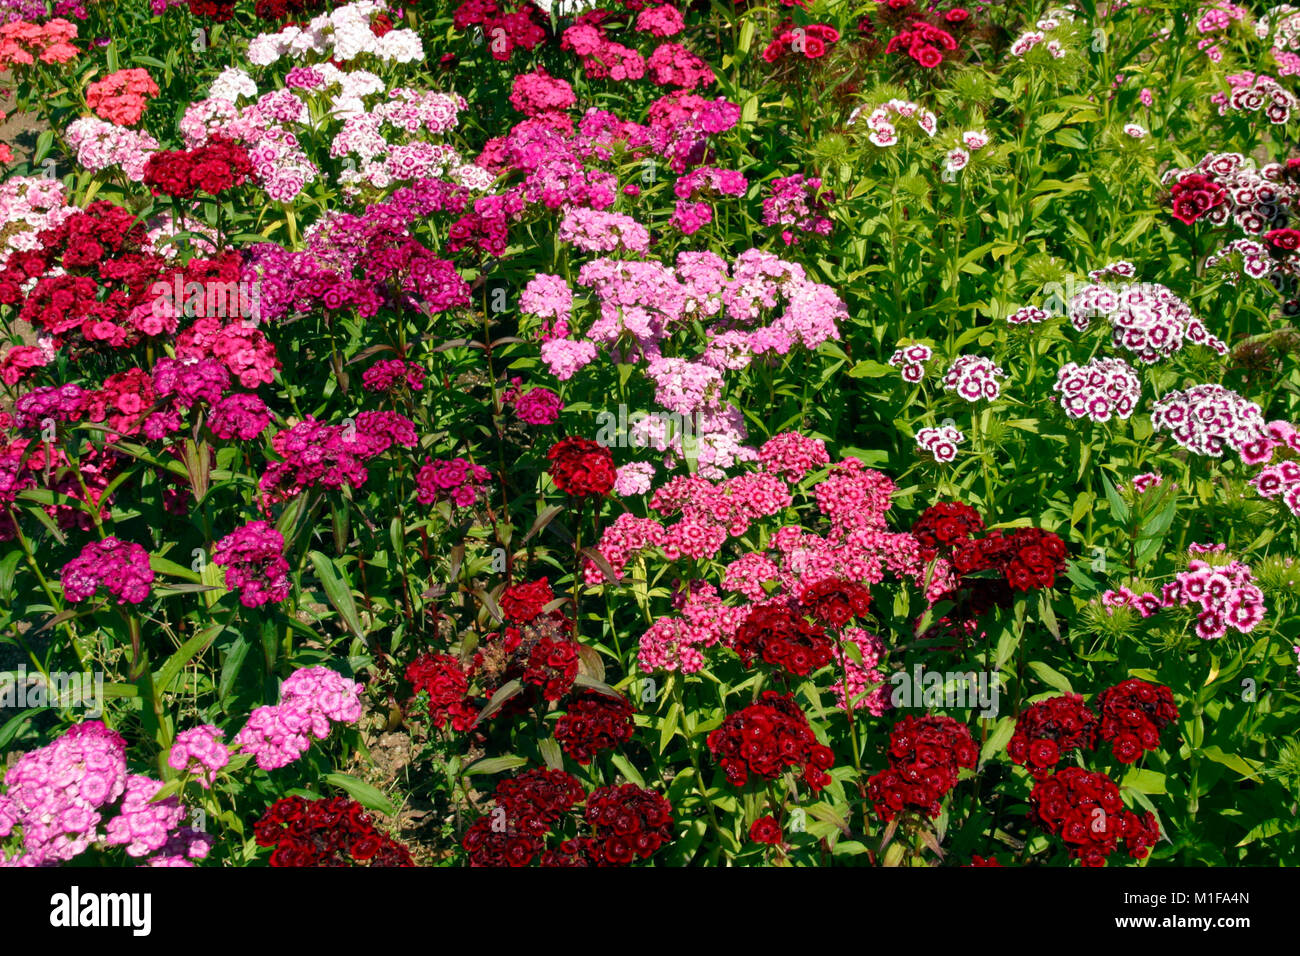 Full frame close up of profuse Dianthus (Sweet William) flowers in a garden flowerbed - Stock Image